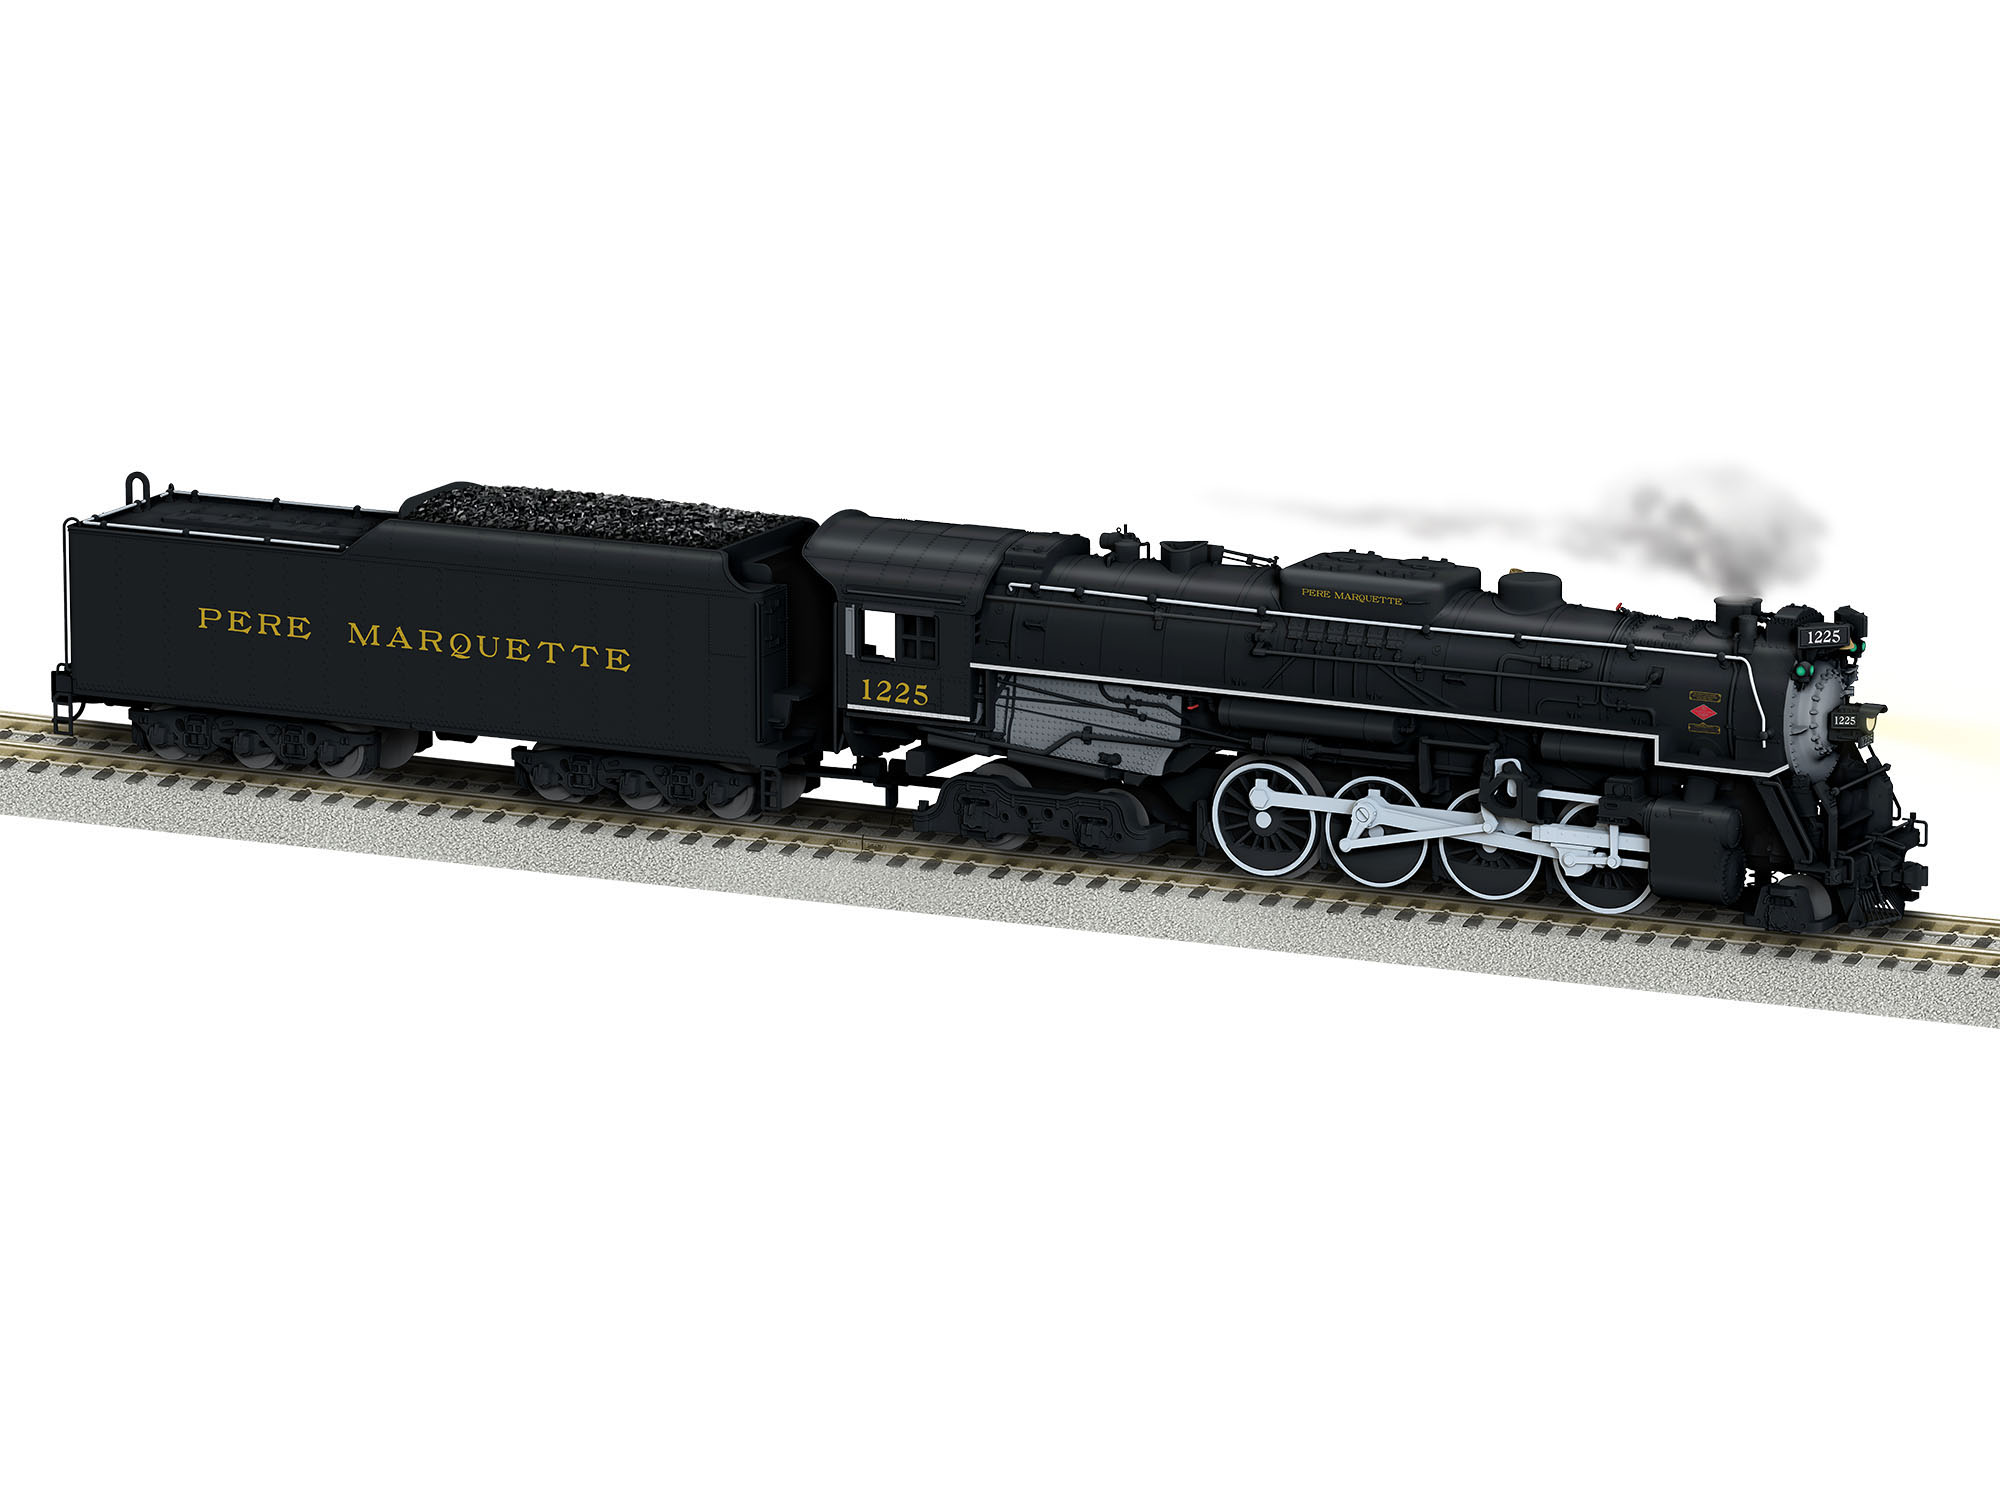 Lionel 644124 S AF Berkshire w/Legacy Pere Marquettte PM #1225